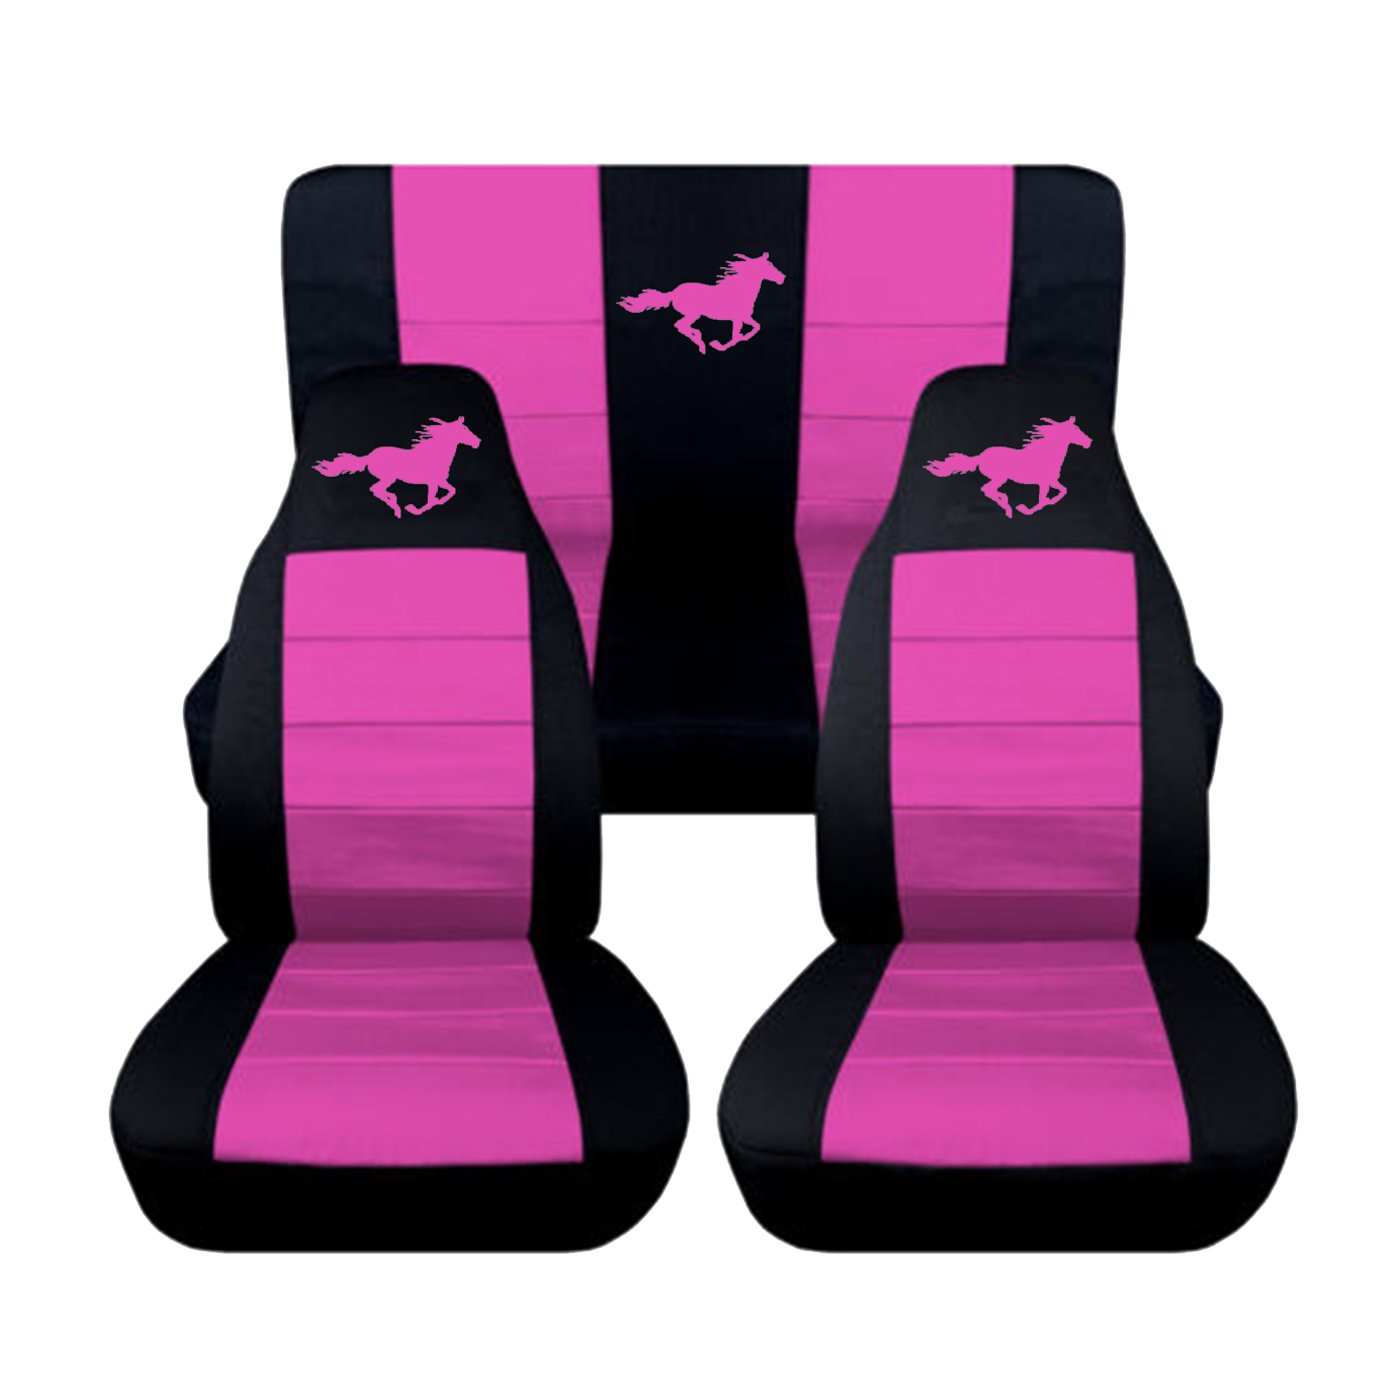 8 Color Options Coupe, Black and Charcoal 2005 2006 2007 Ford Mustang Front and Rear Runnng Horse Seat Covers